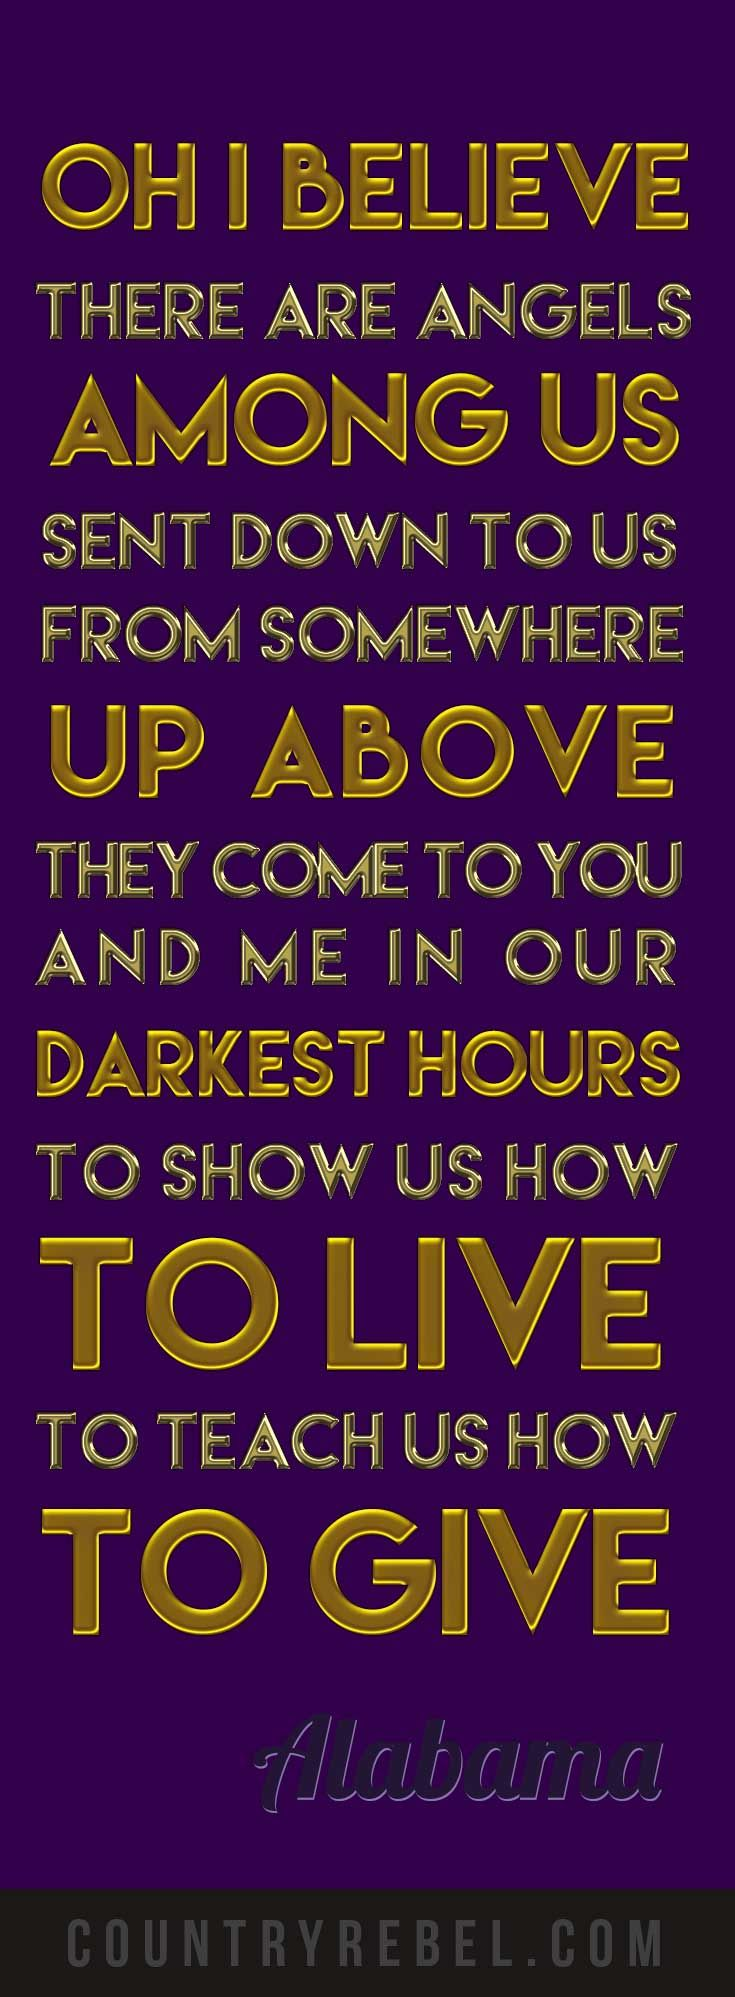 Positive Inspirational Quotes - Alabama - Angels Among Us Lyrics and Youtube Country Music Video at Country Rebel http://countryrebel.com/blogs/videos/18208331-alabama-angels-among-us-video